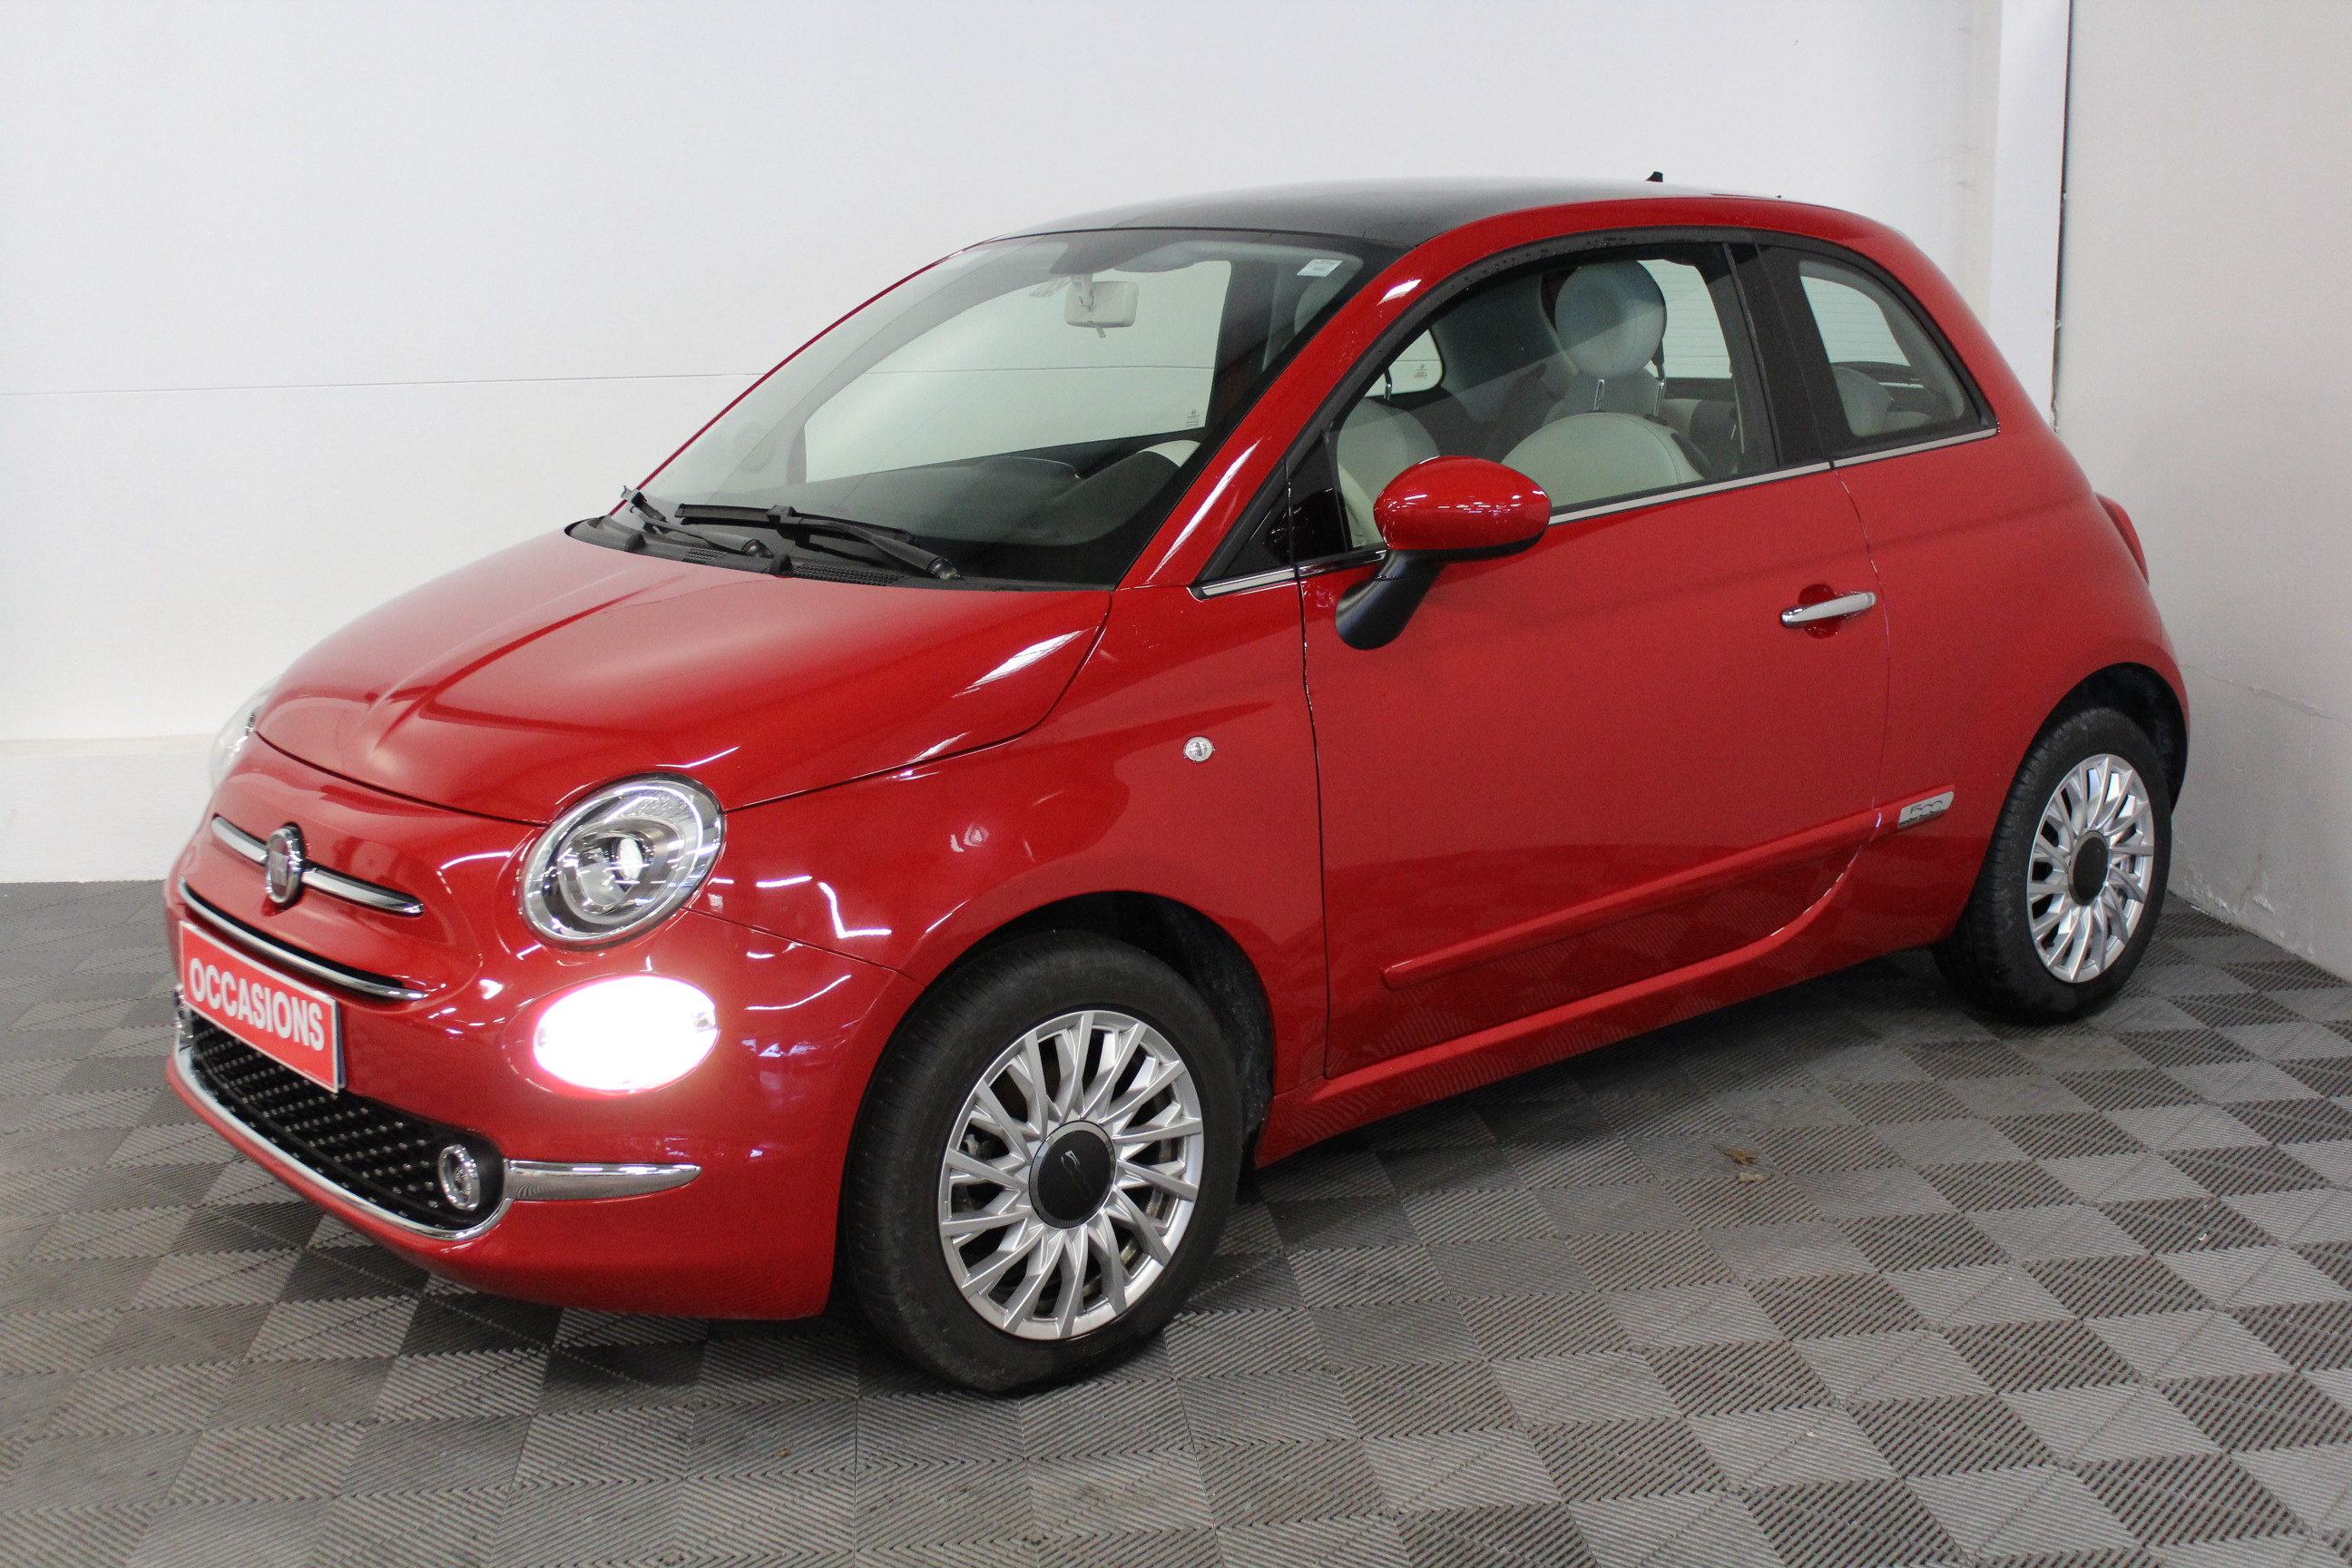 FIAT 500 MY17 1.2 69 ch Lounge d'occasion